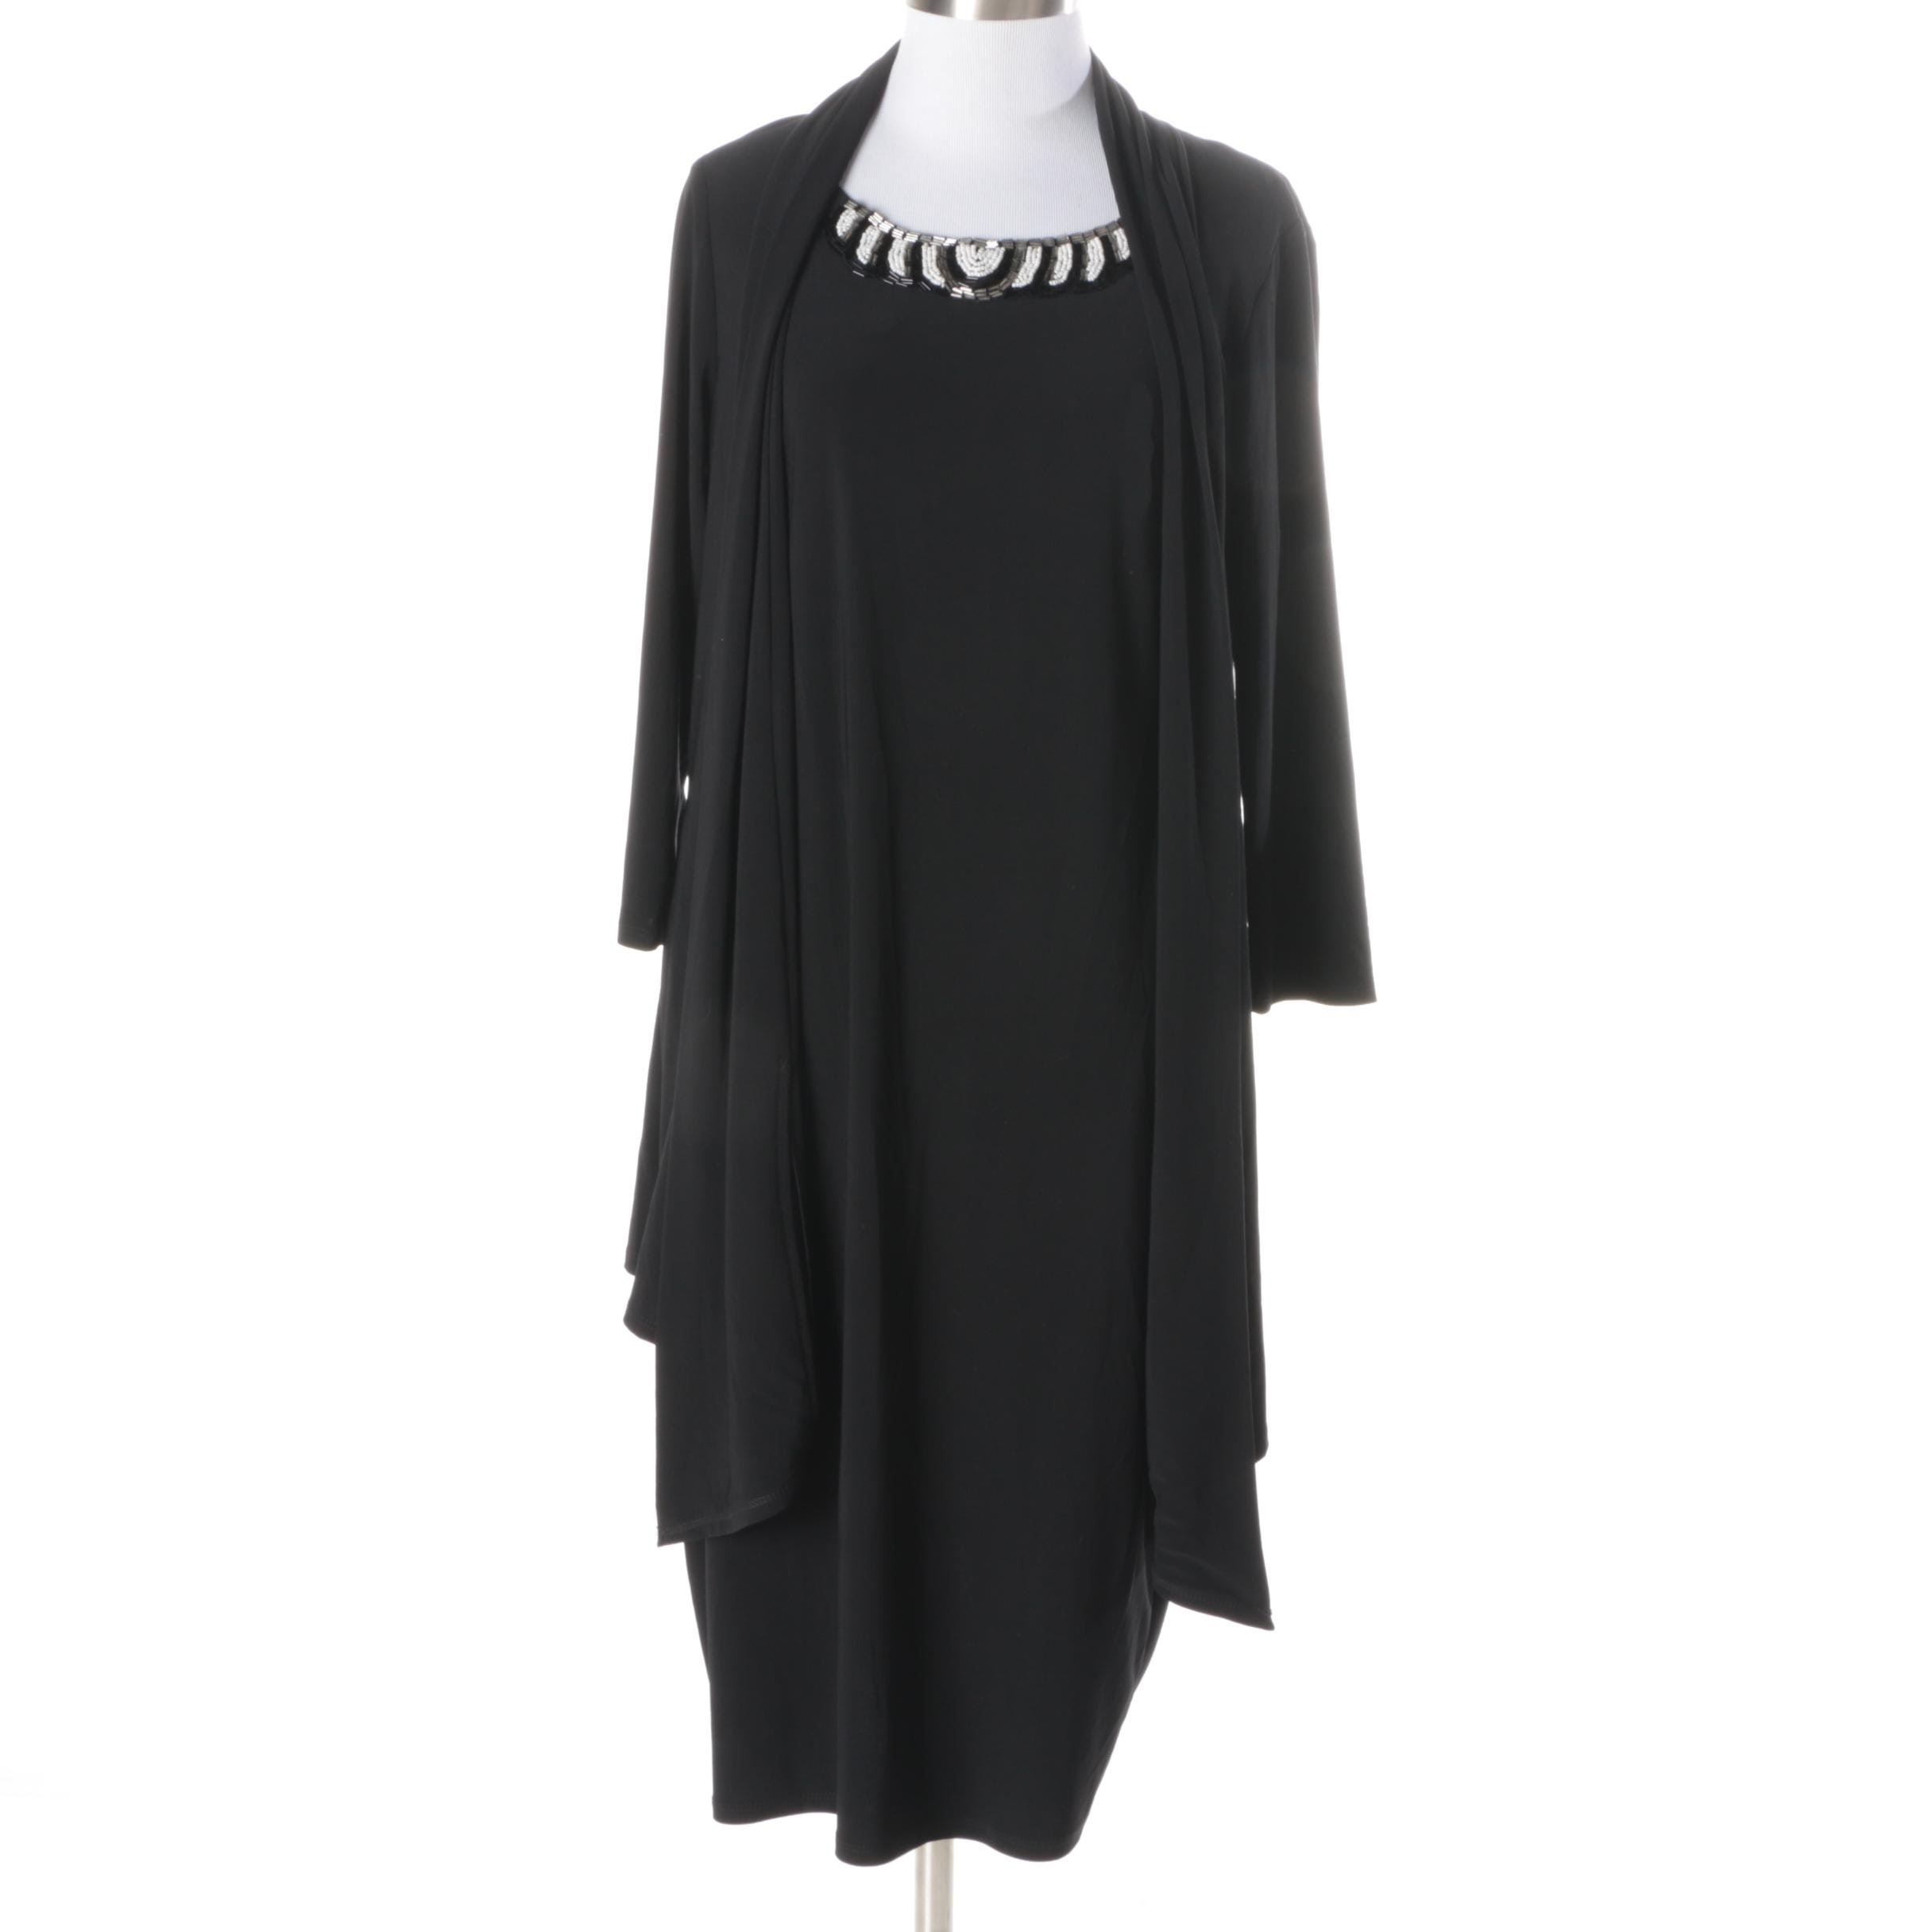 Evan-Picone Embellished Black Dress with Attached Jacket